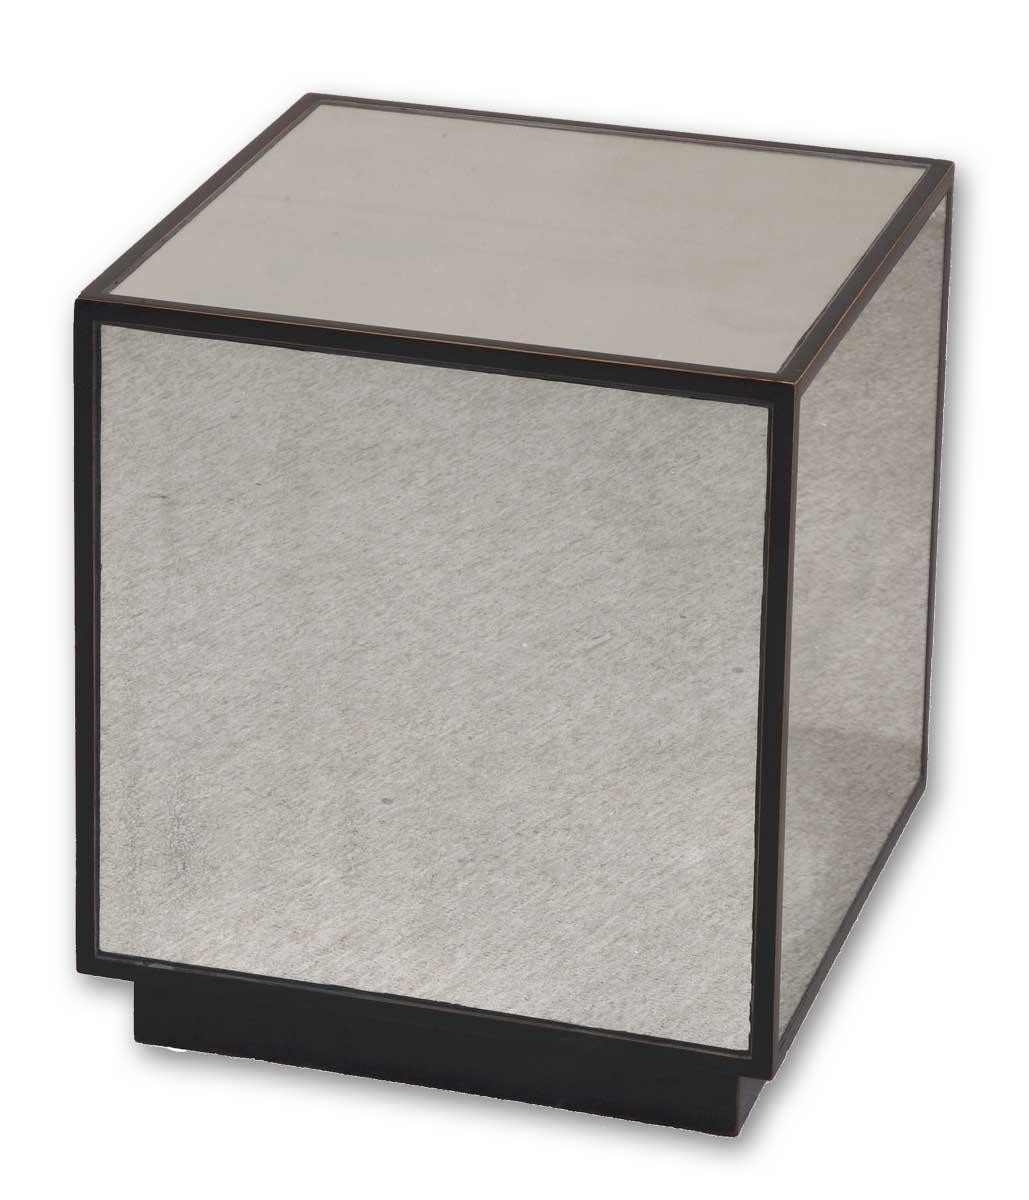 Accent Furniture - Occasional Tables Matty Mirrored Cube by Uttermost at Upper Room Home Furnishings